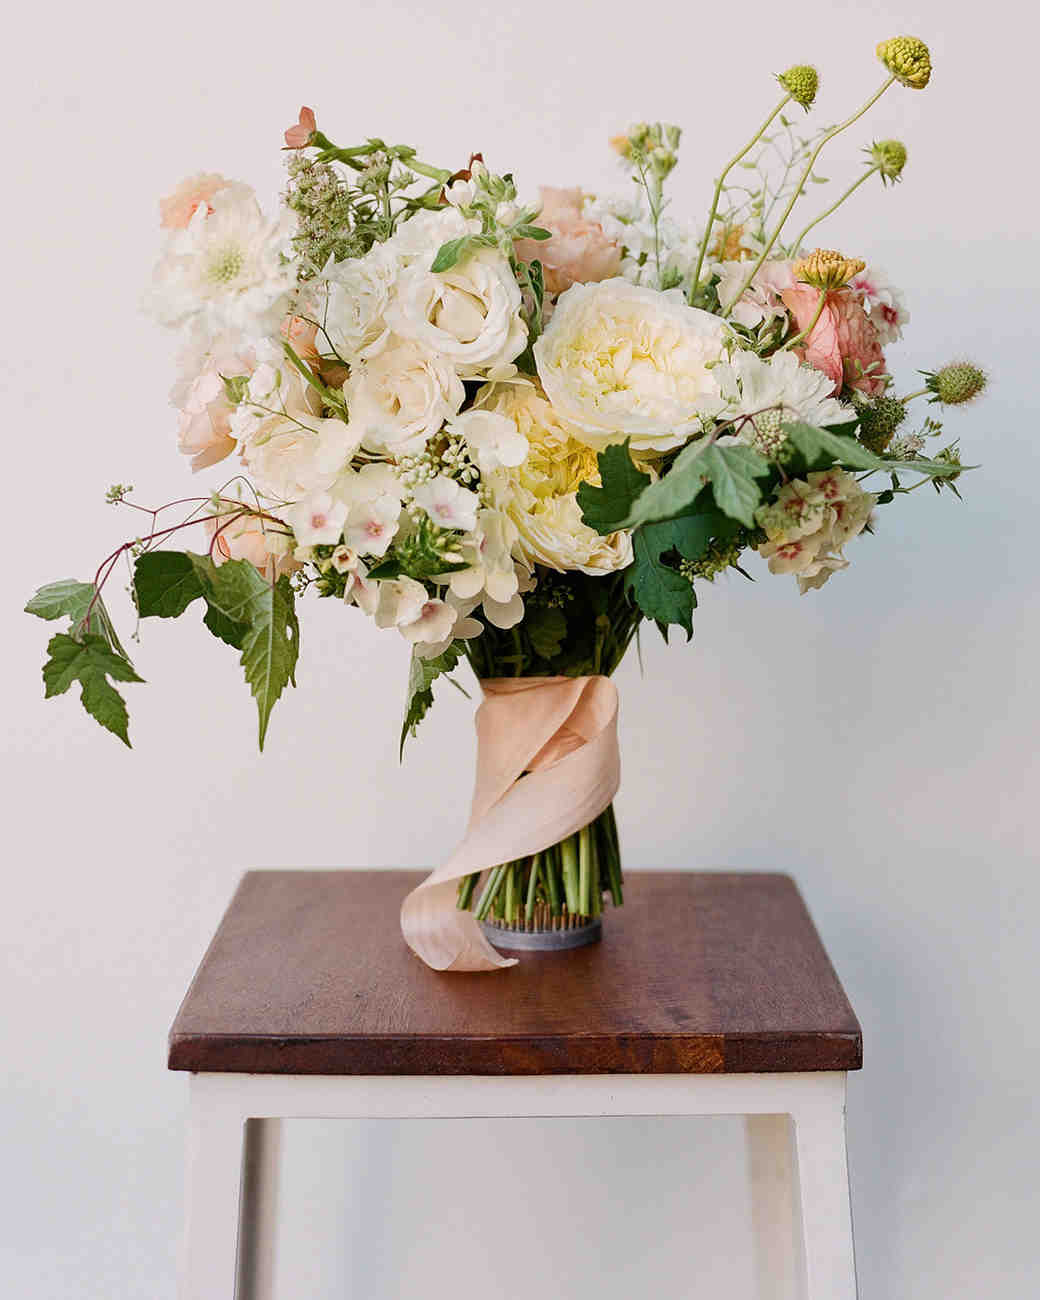 bouquet of white and pink roses with grapevine ivy and mint